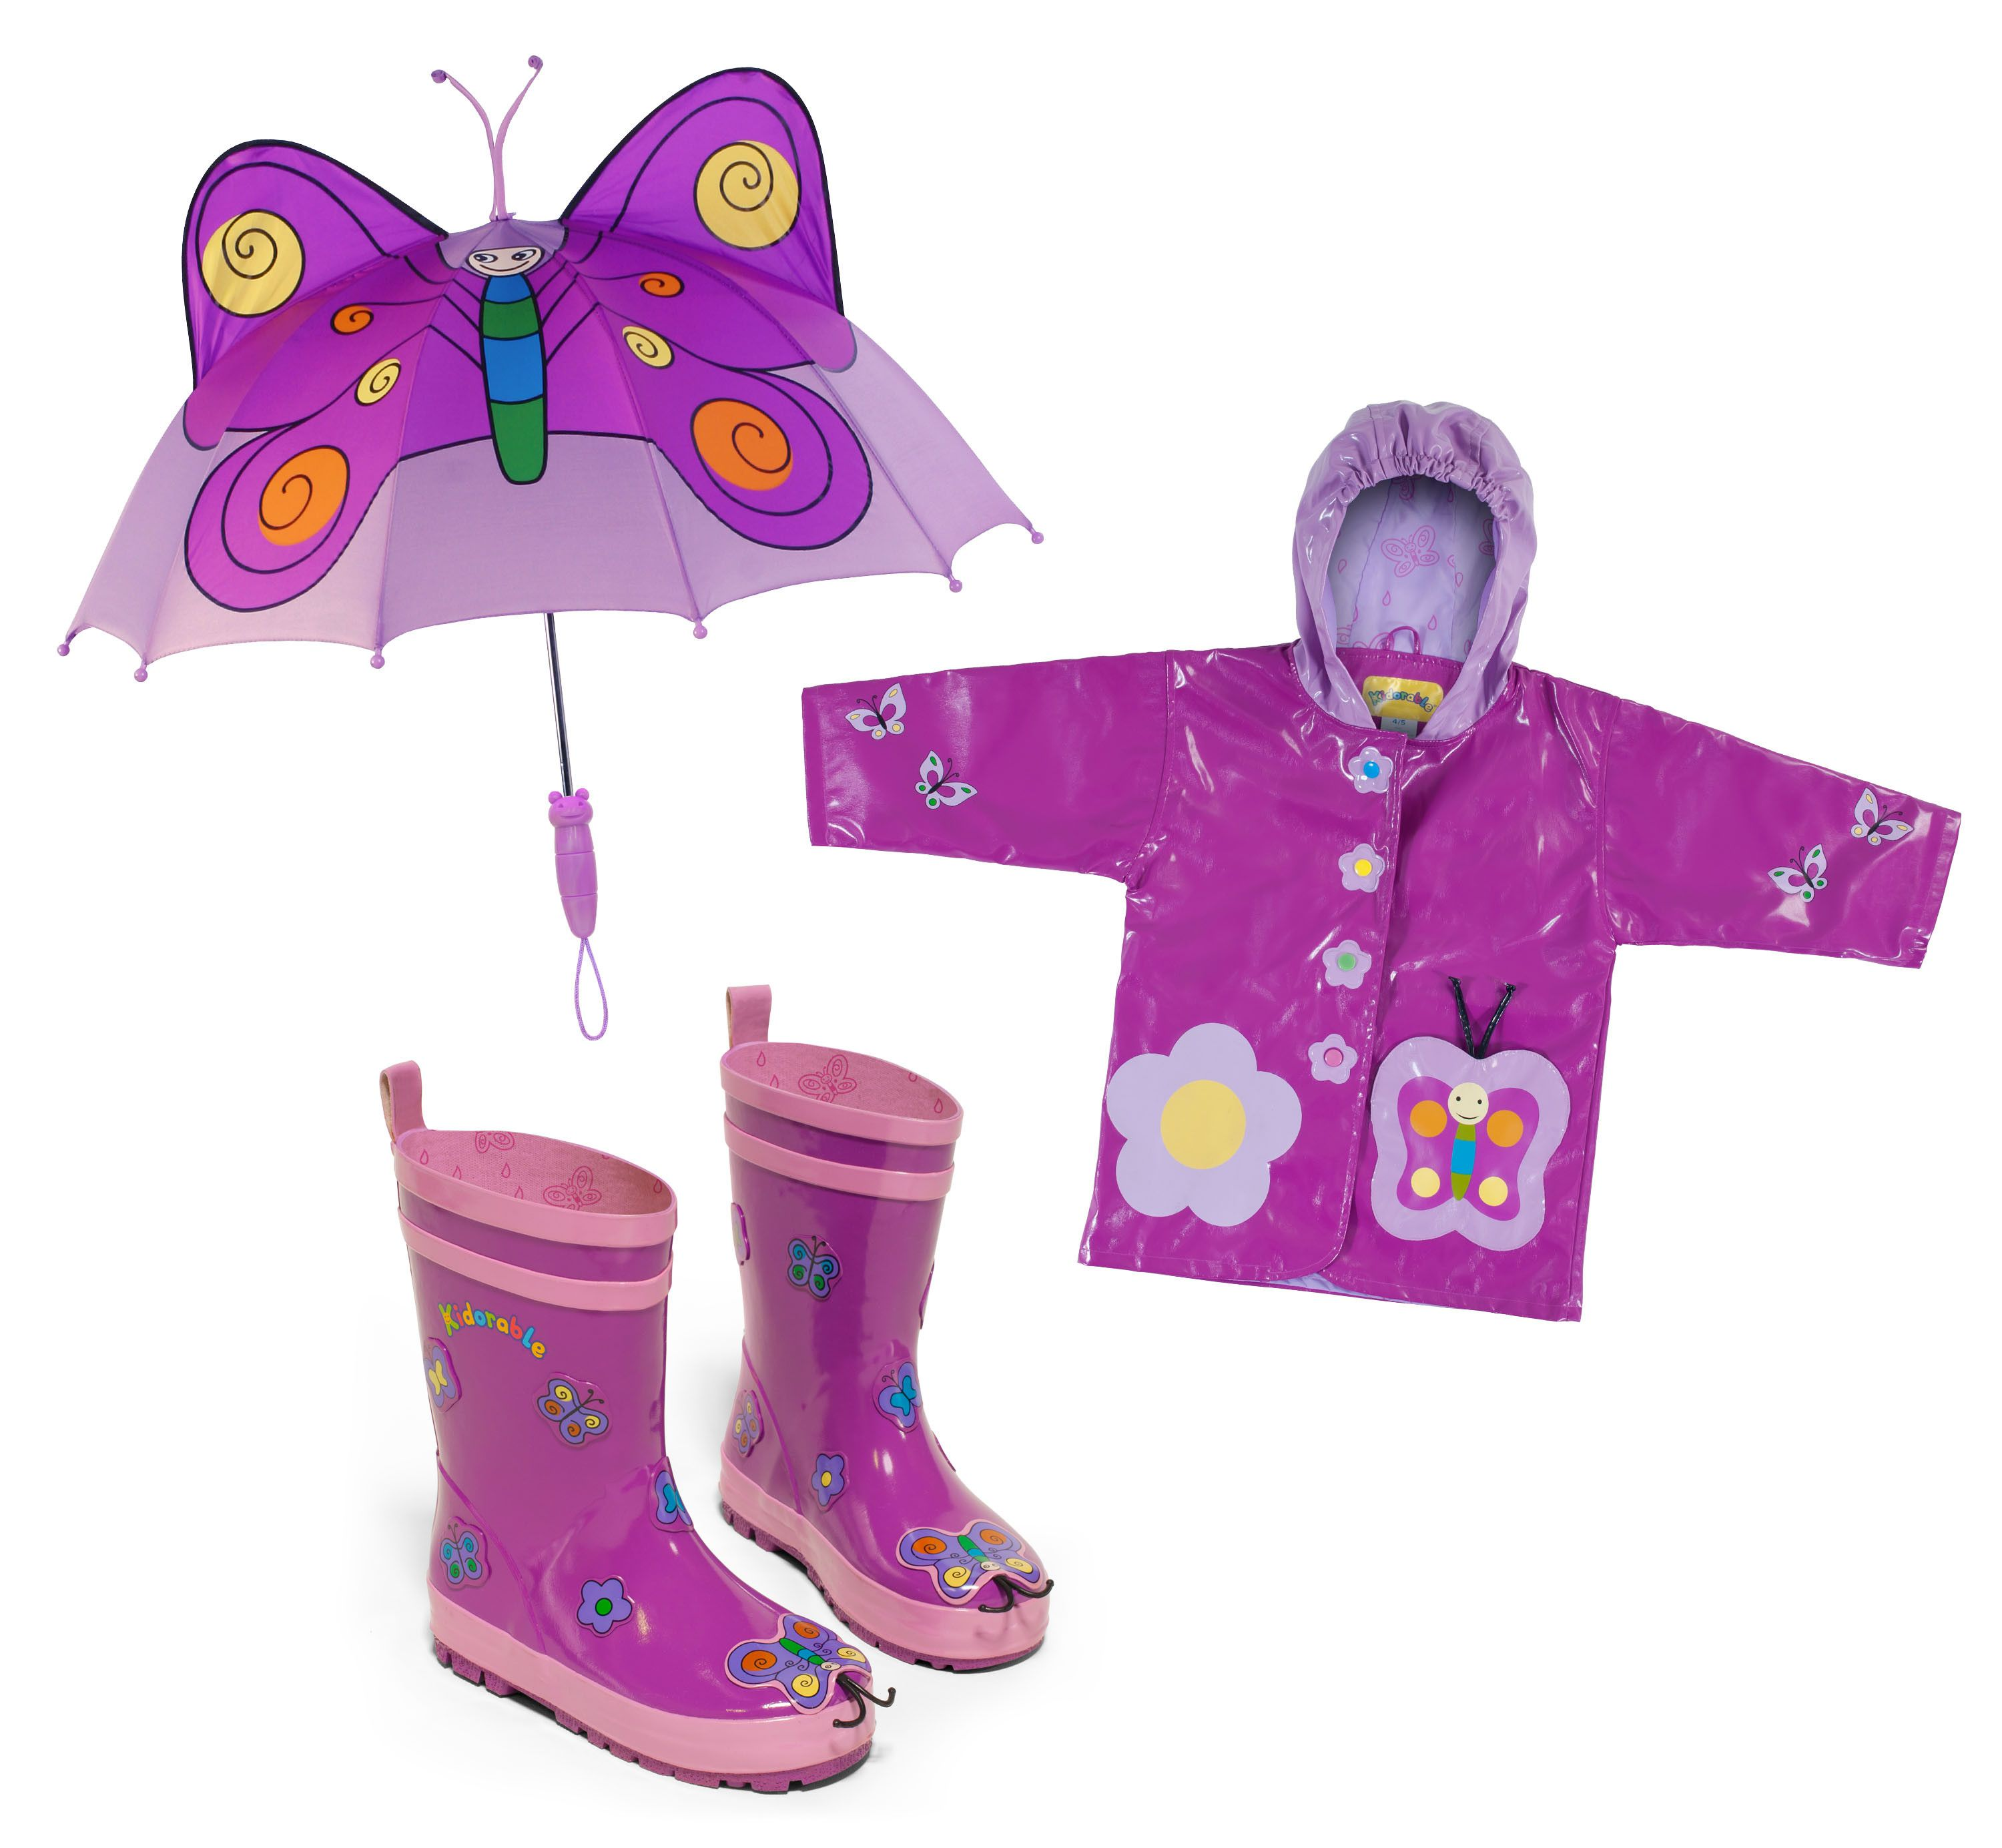 Cute Butterfly childrens raincoat with